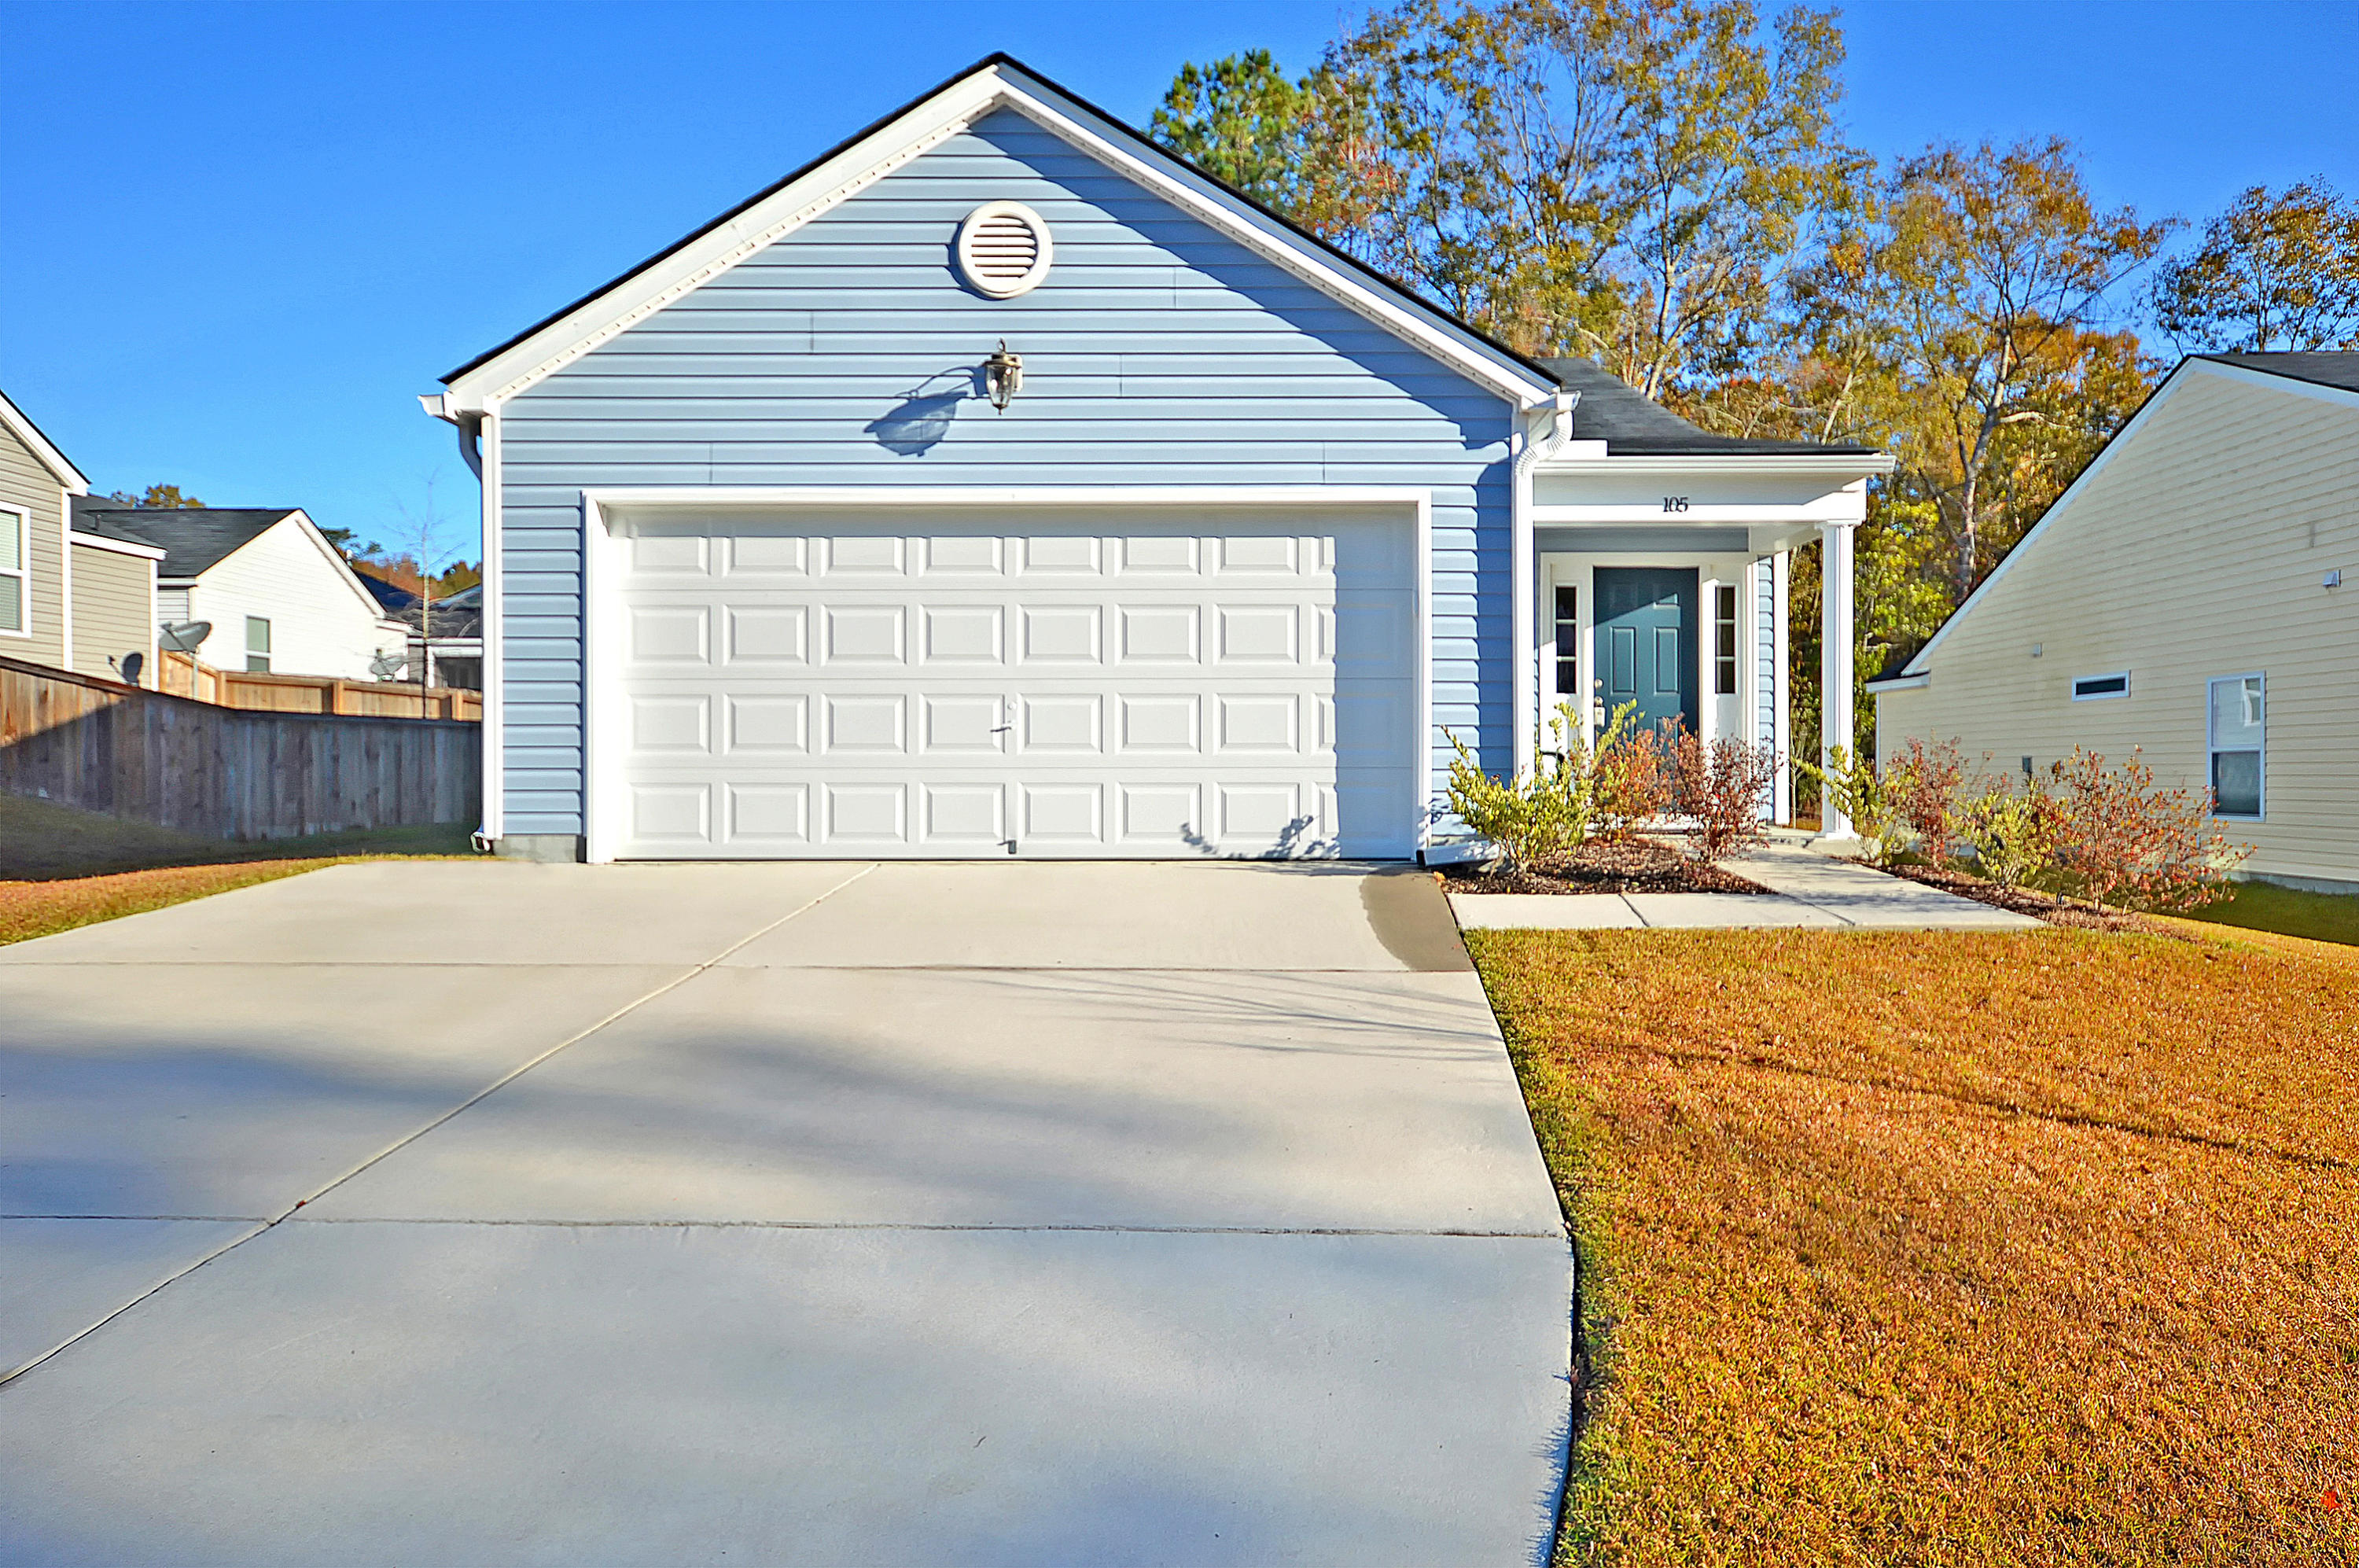 105 Runnels Cove Summerville, Sc 29485